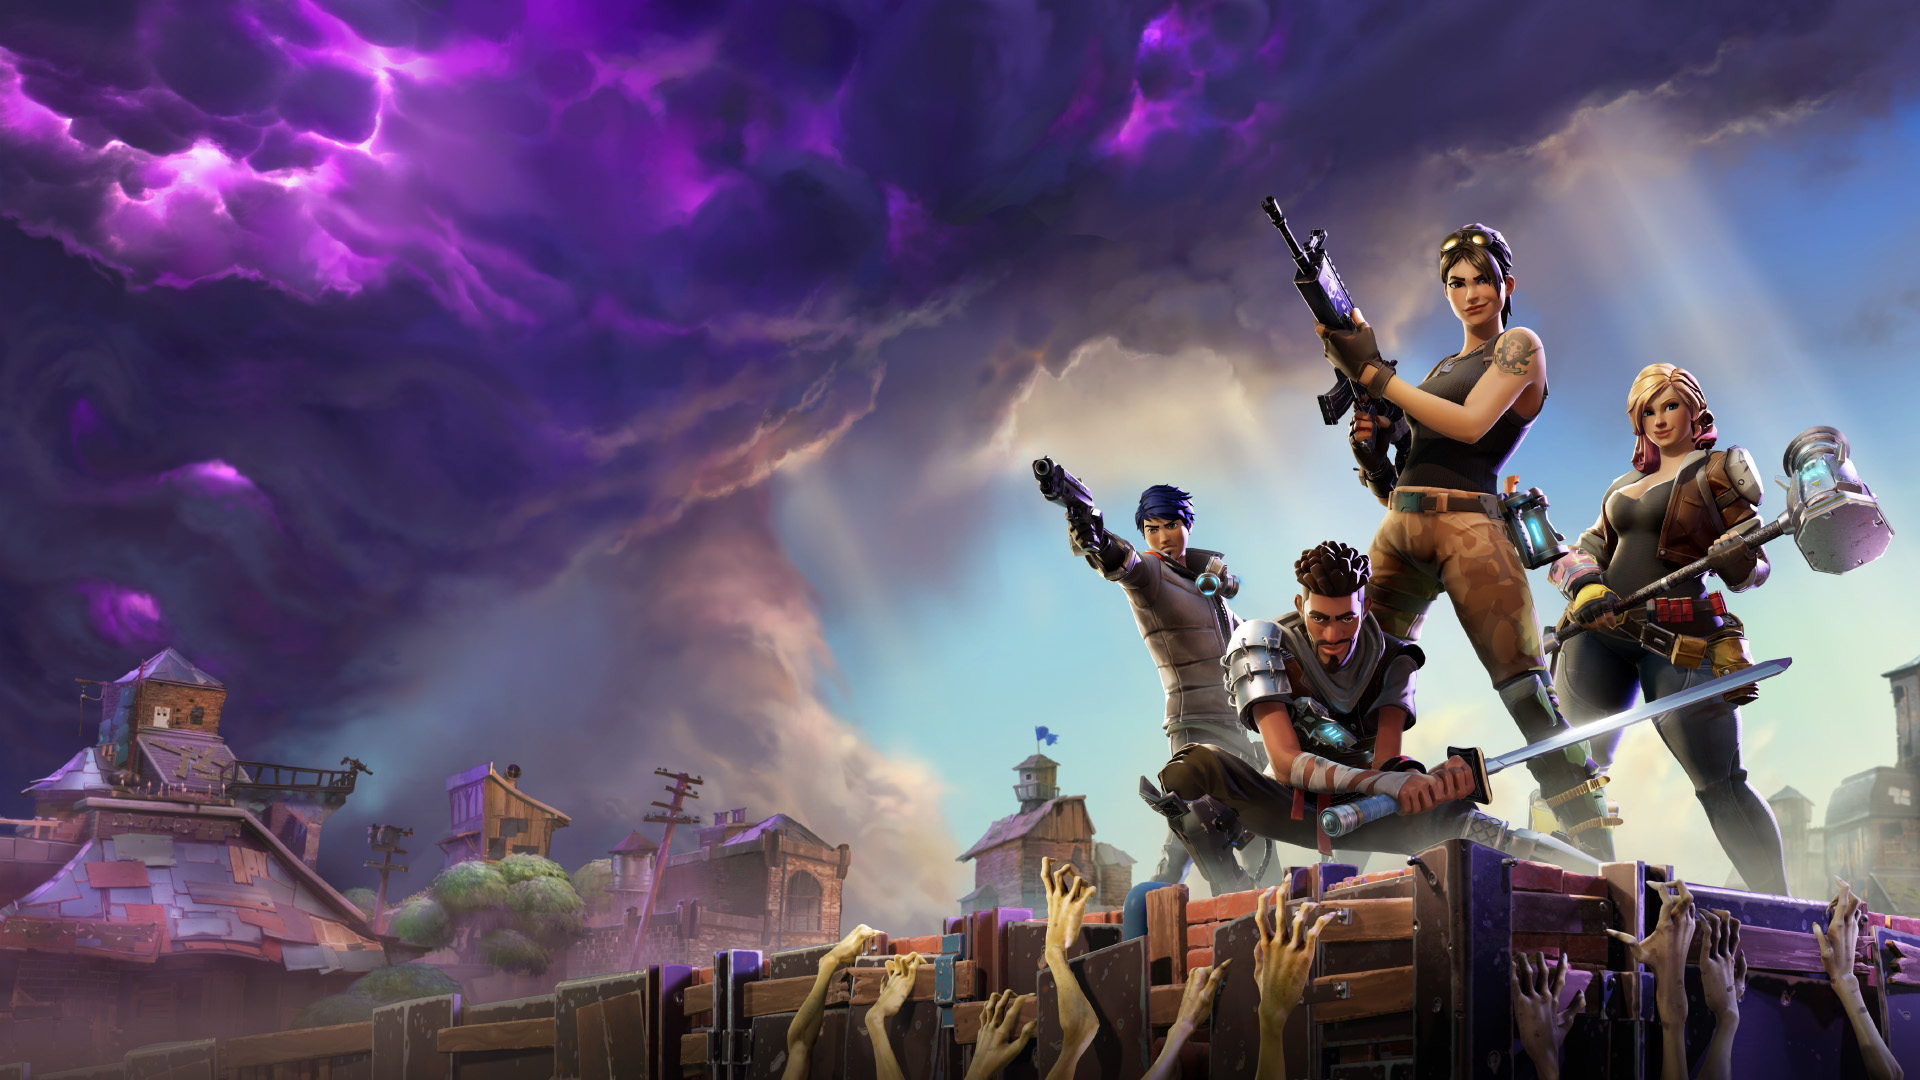 Fortnite Patch 3.2 Is Here With A New Mode, Better Hoverboard Racing